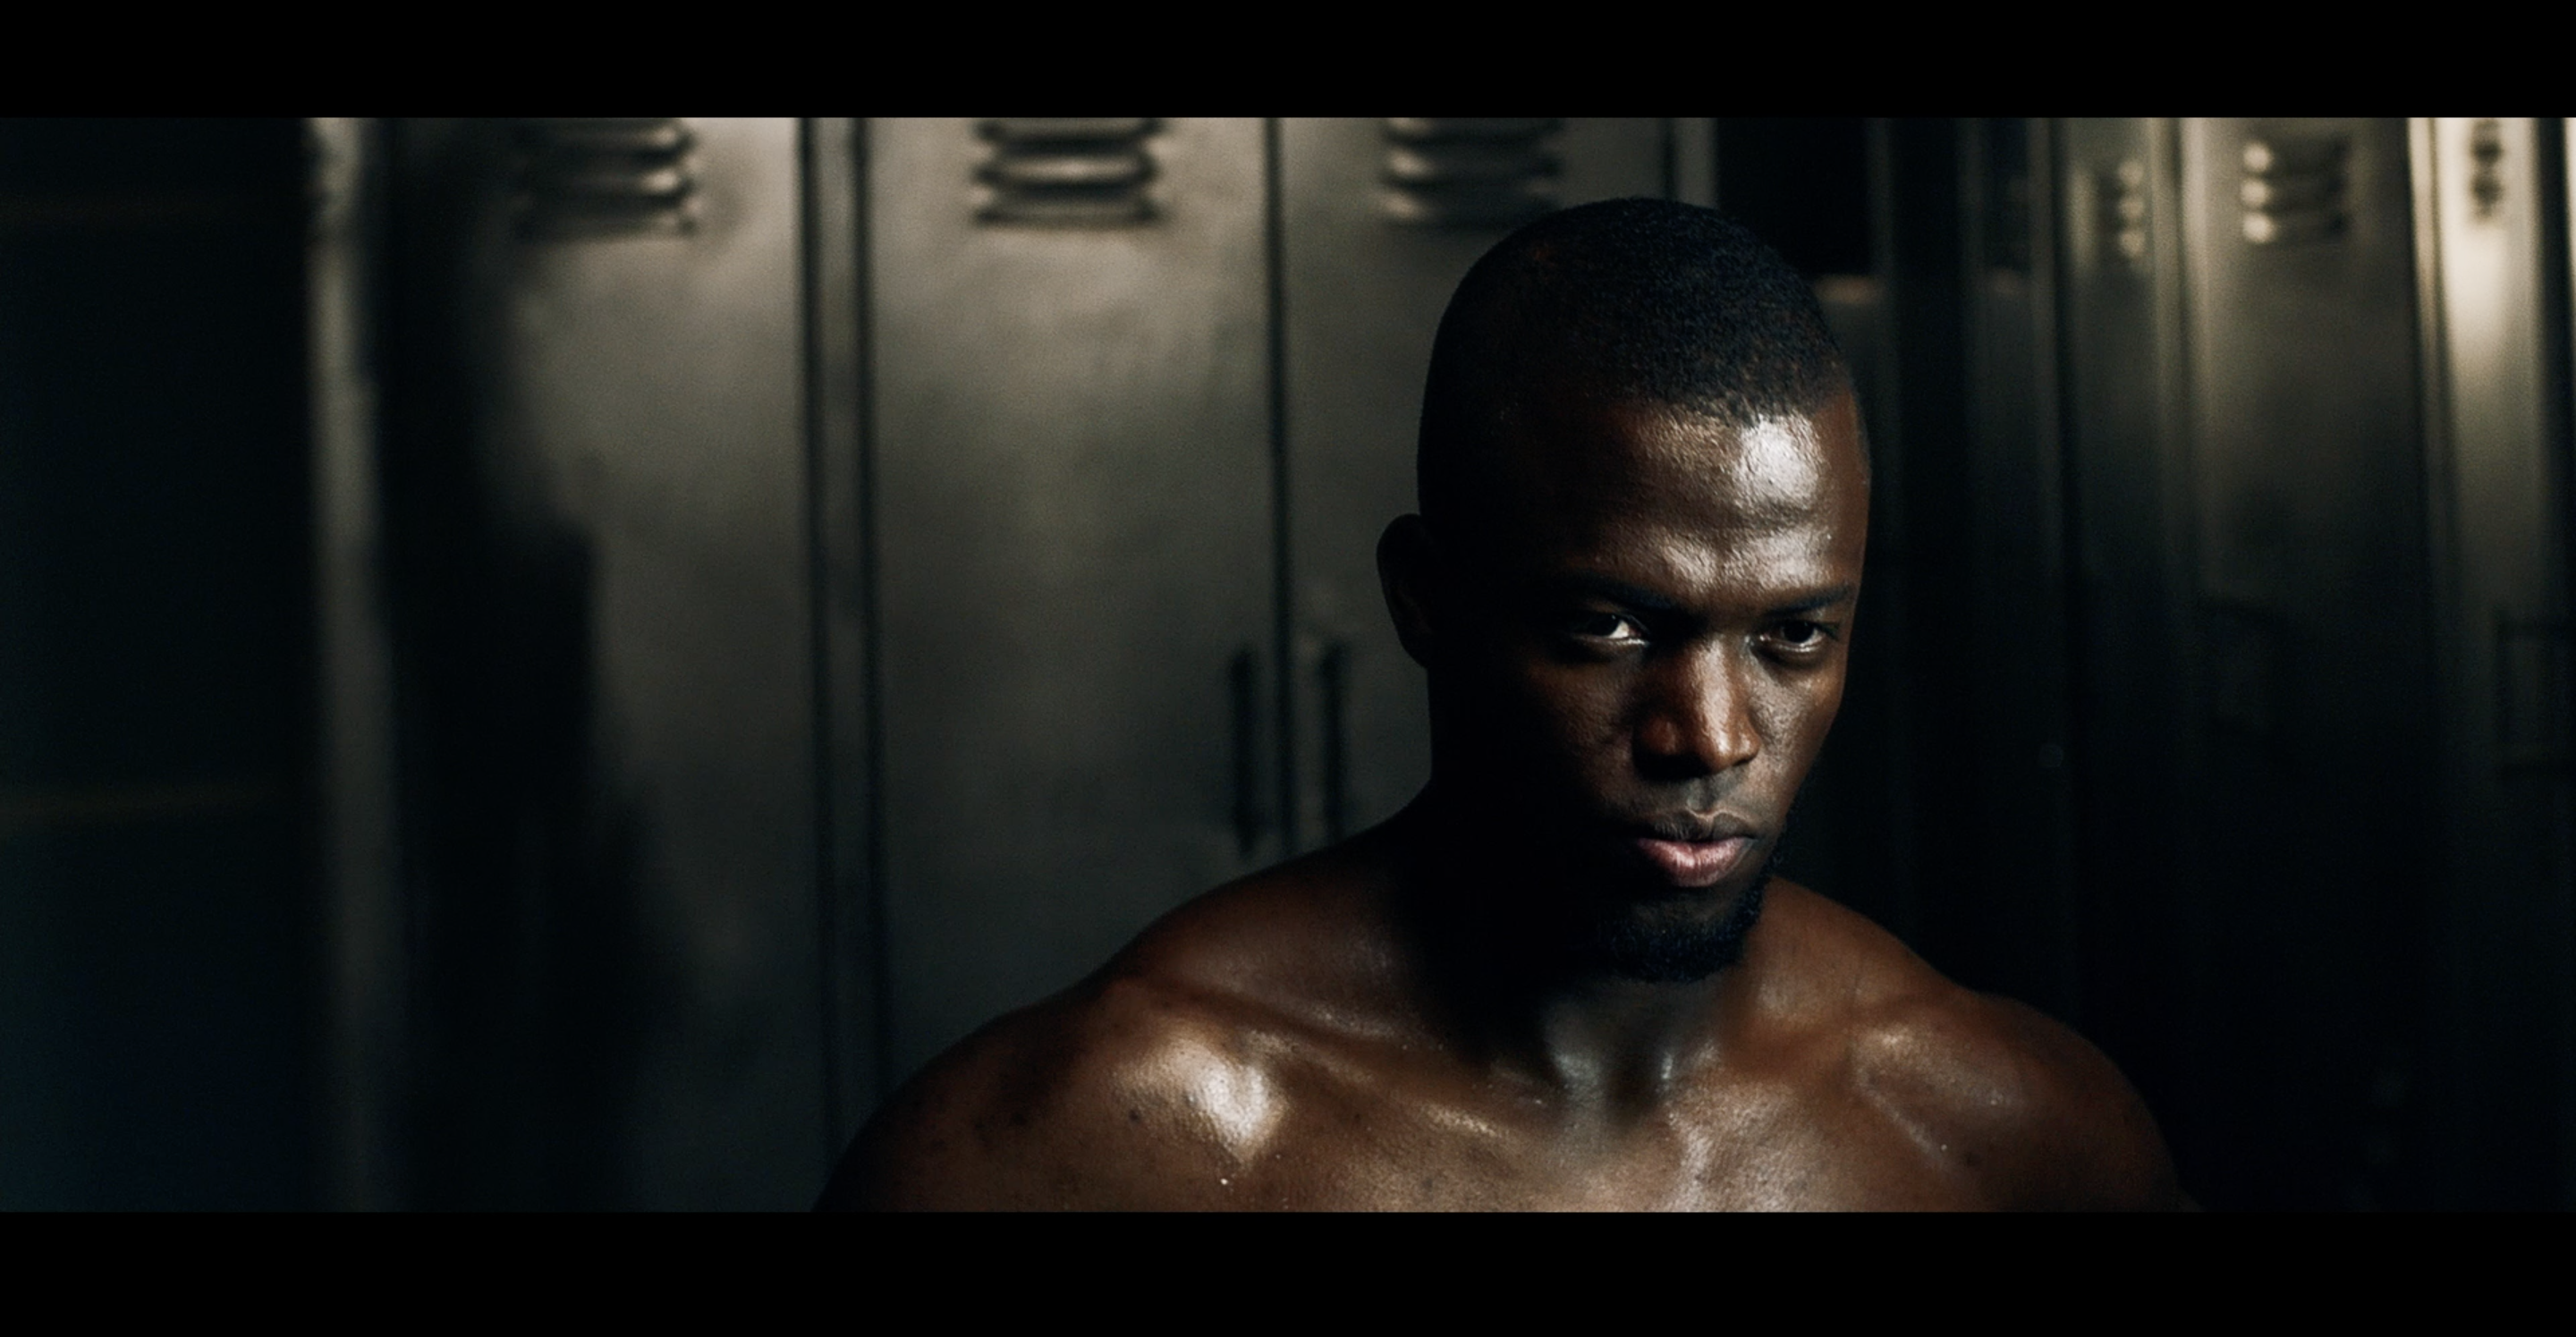 Enner Valencia stares directly into the camera with determination